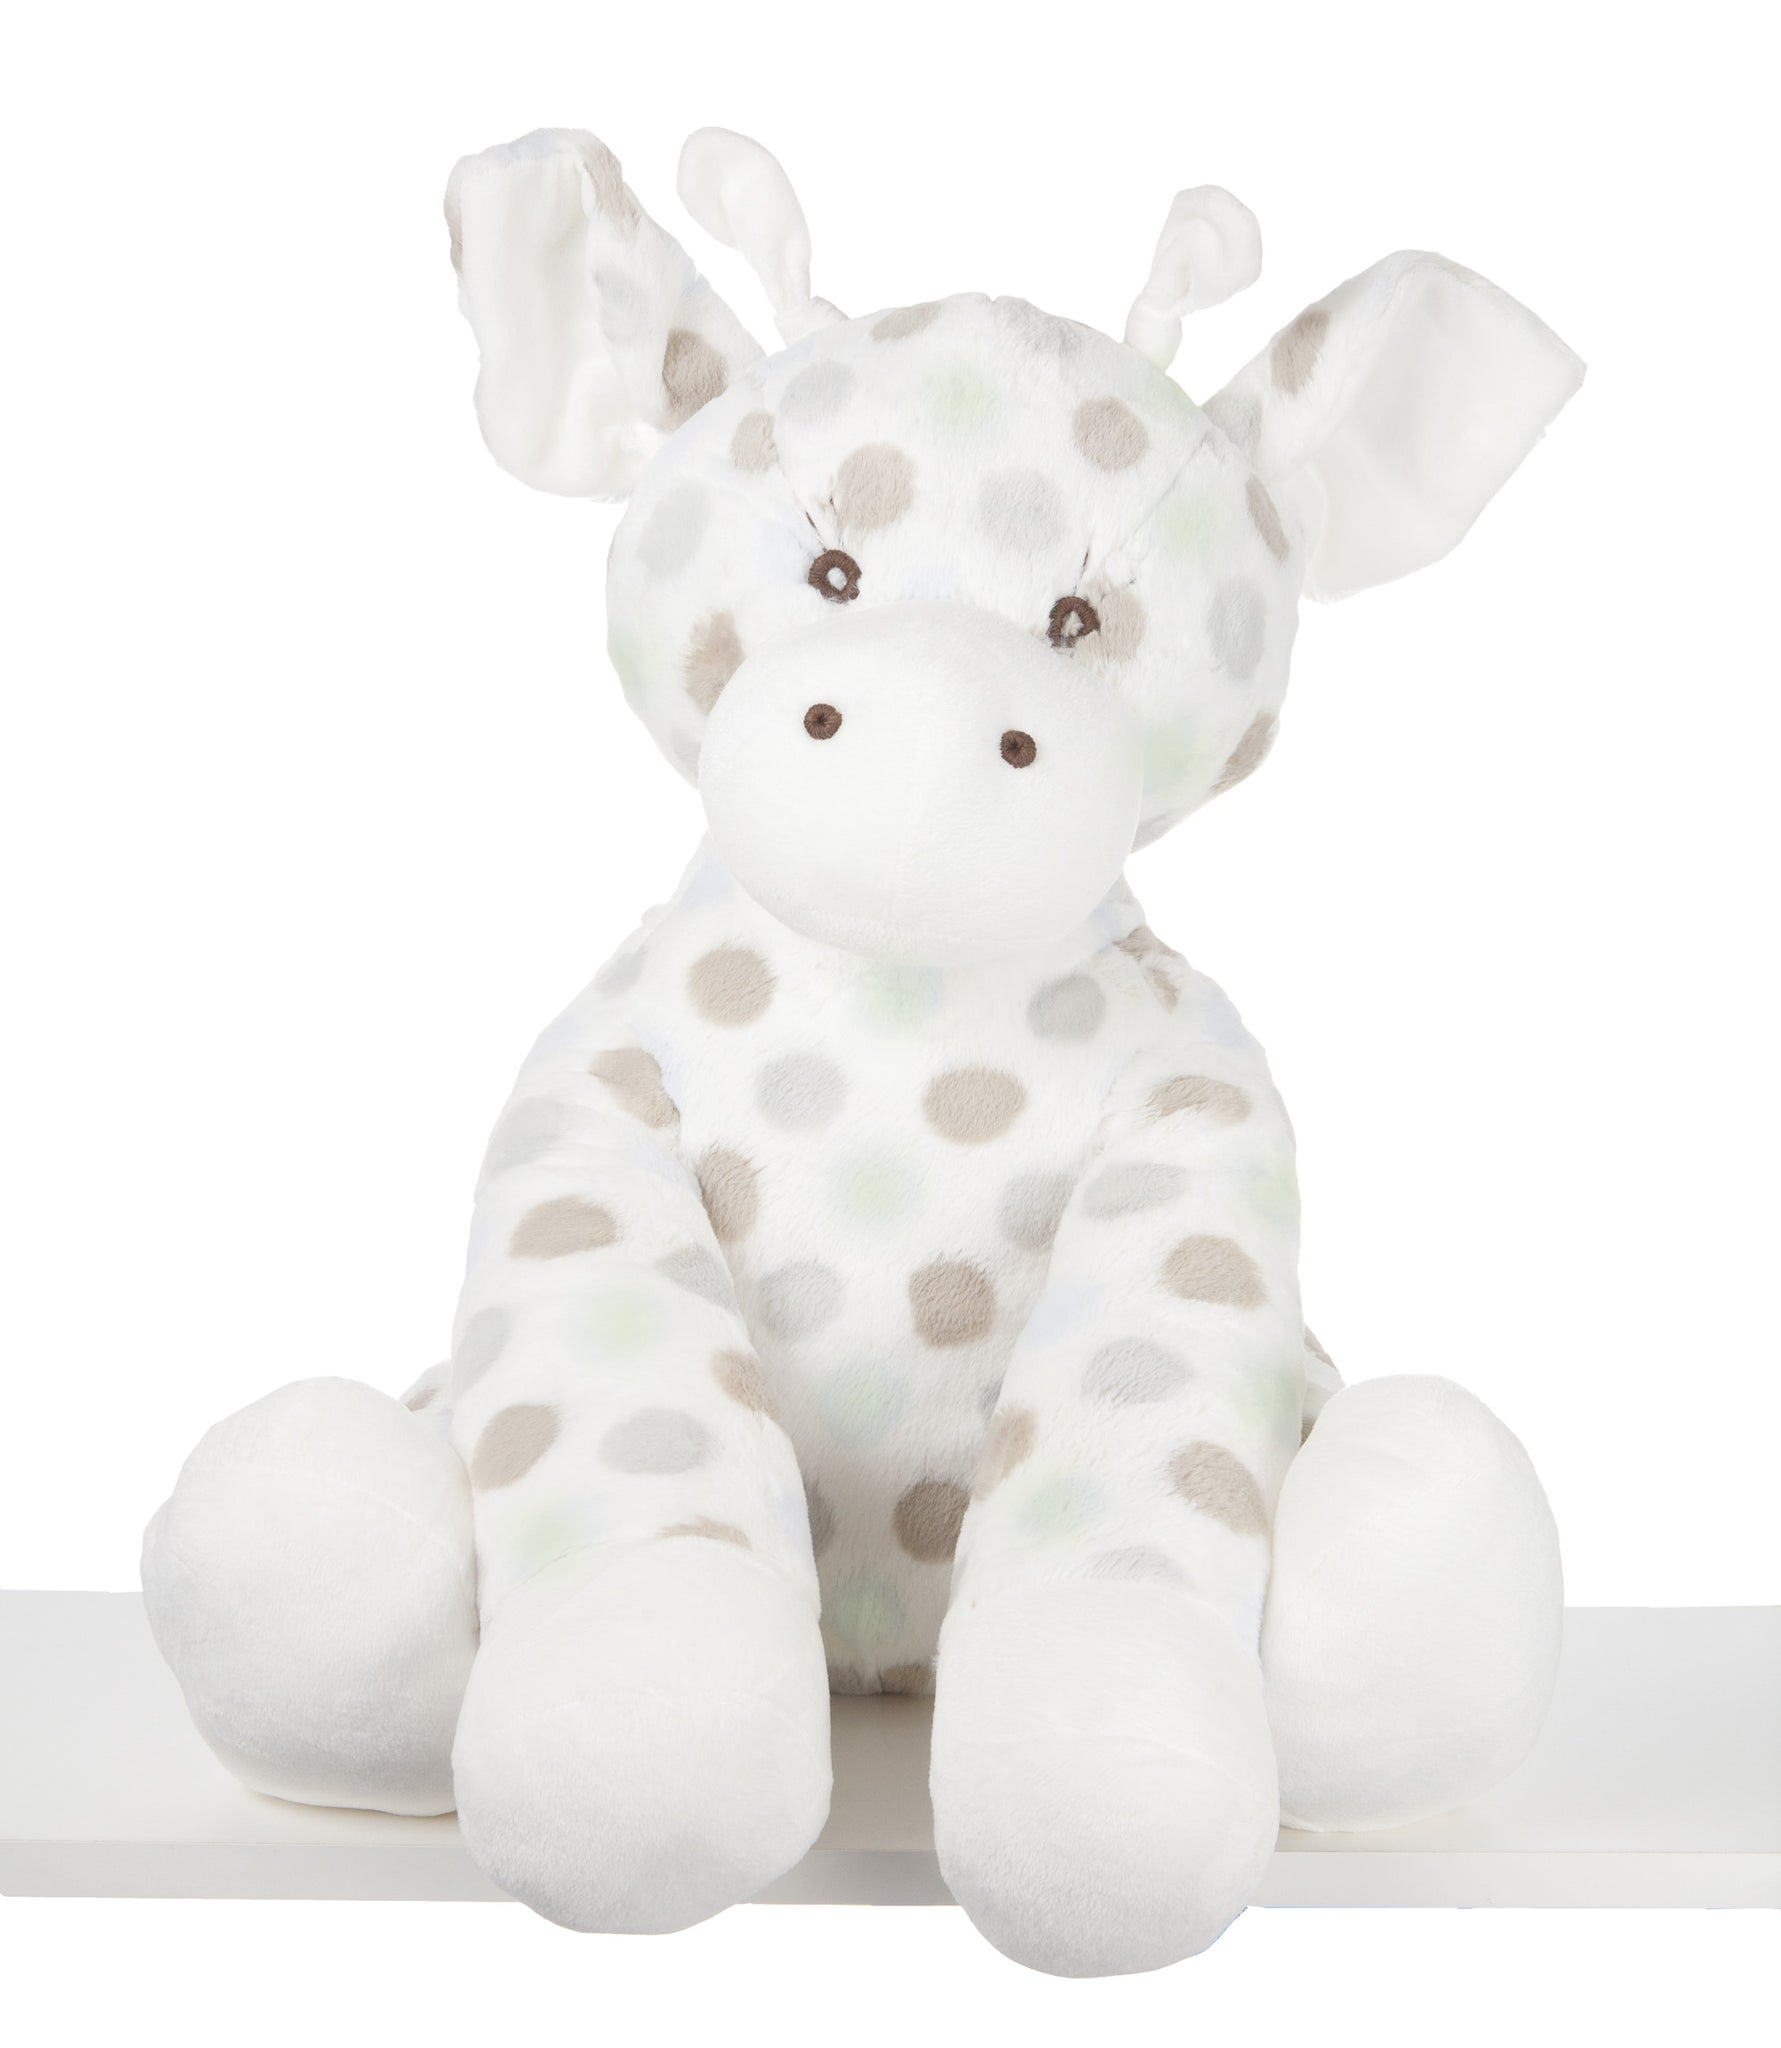 Little G Plush Toy Giraffe Celadon